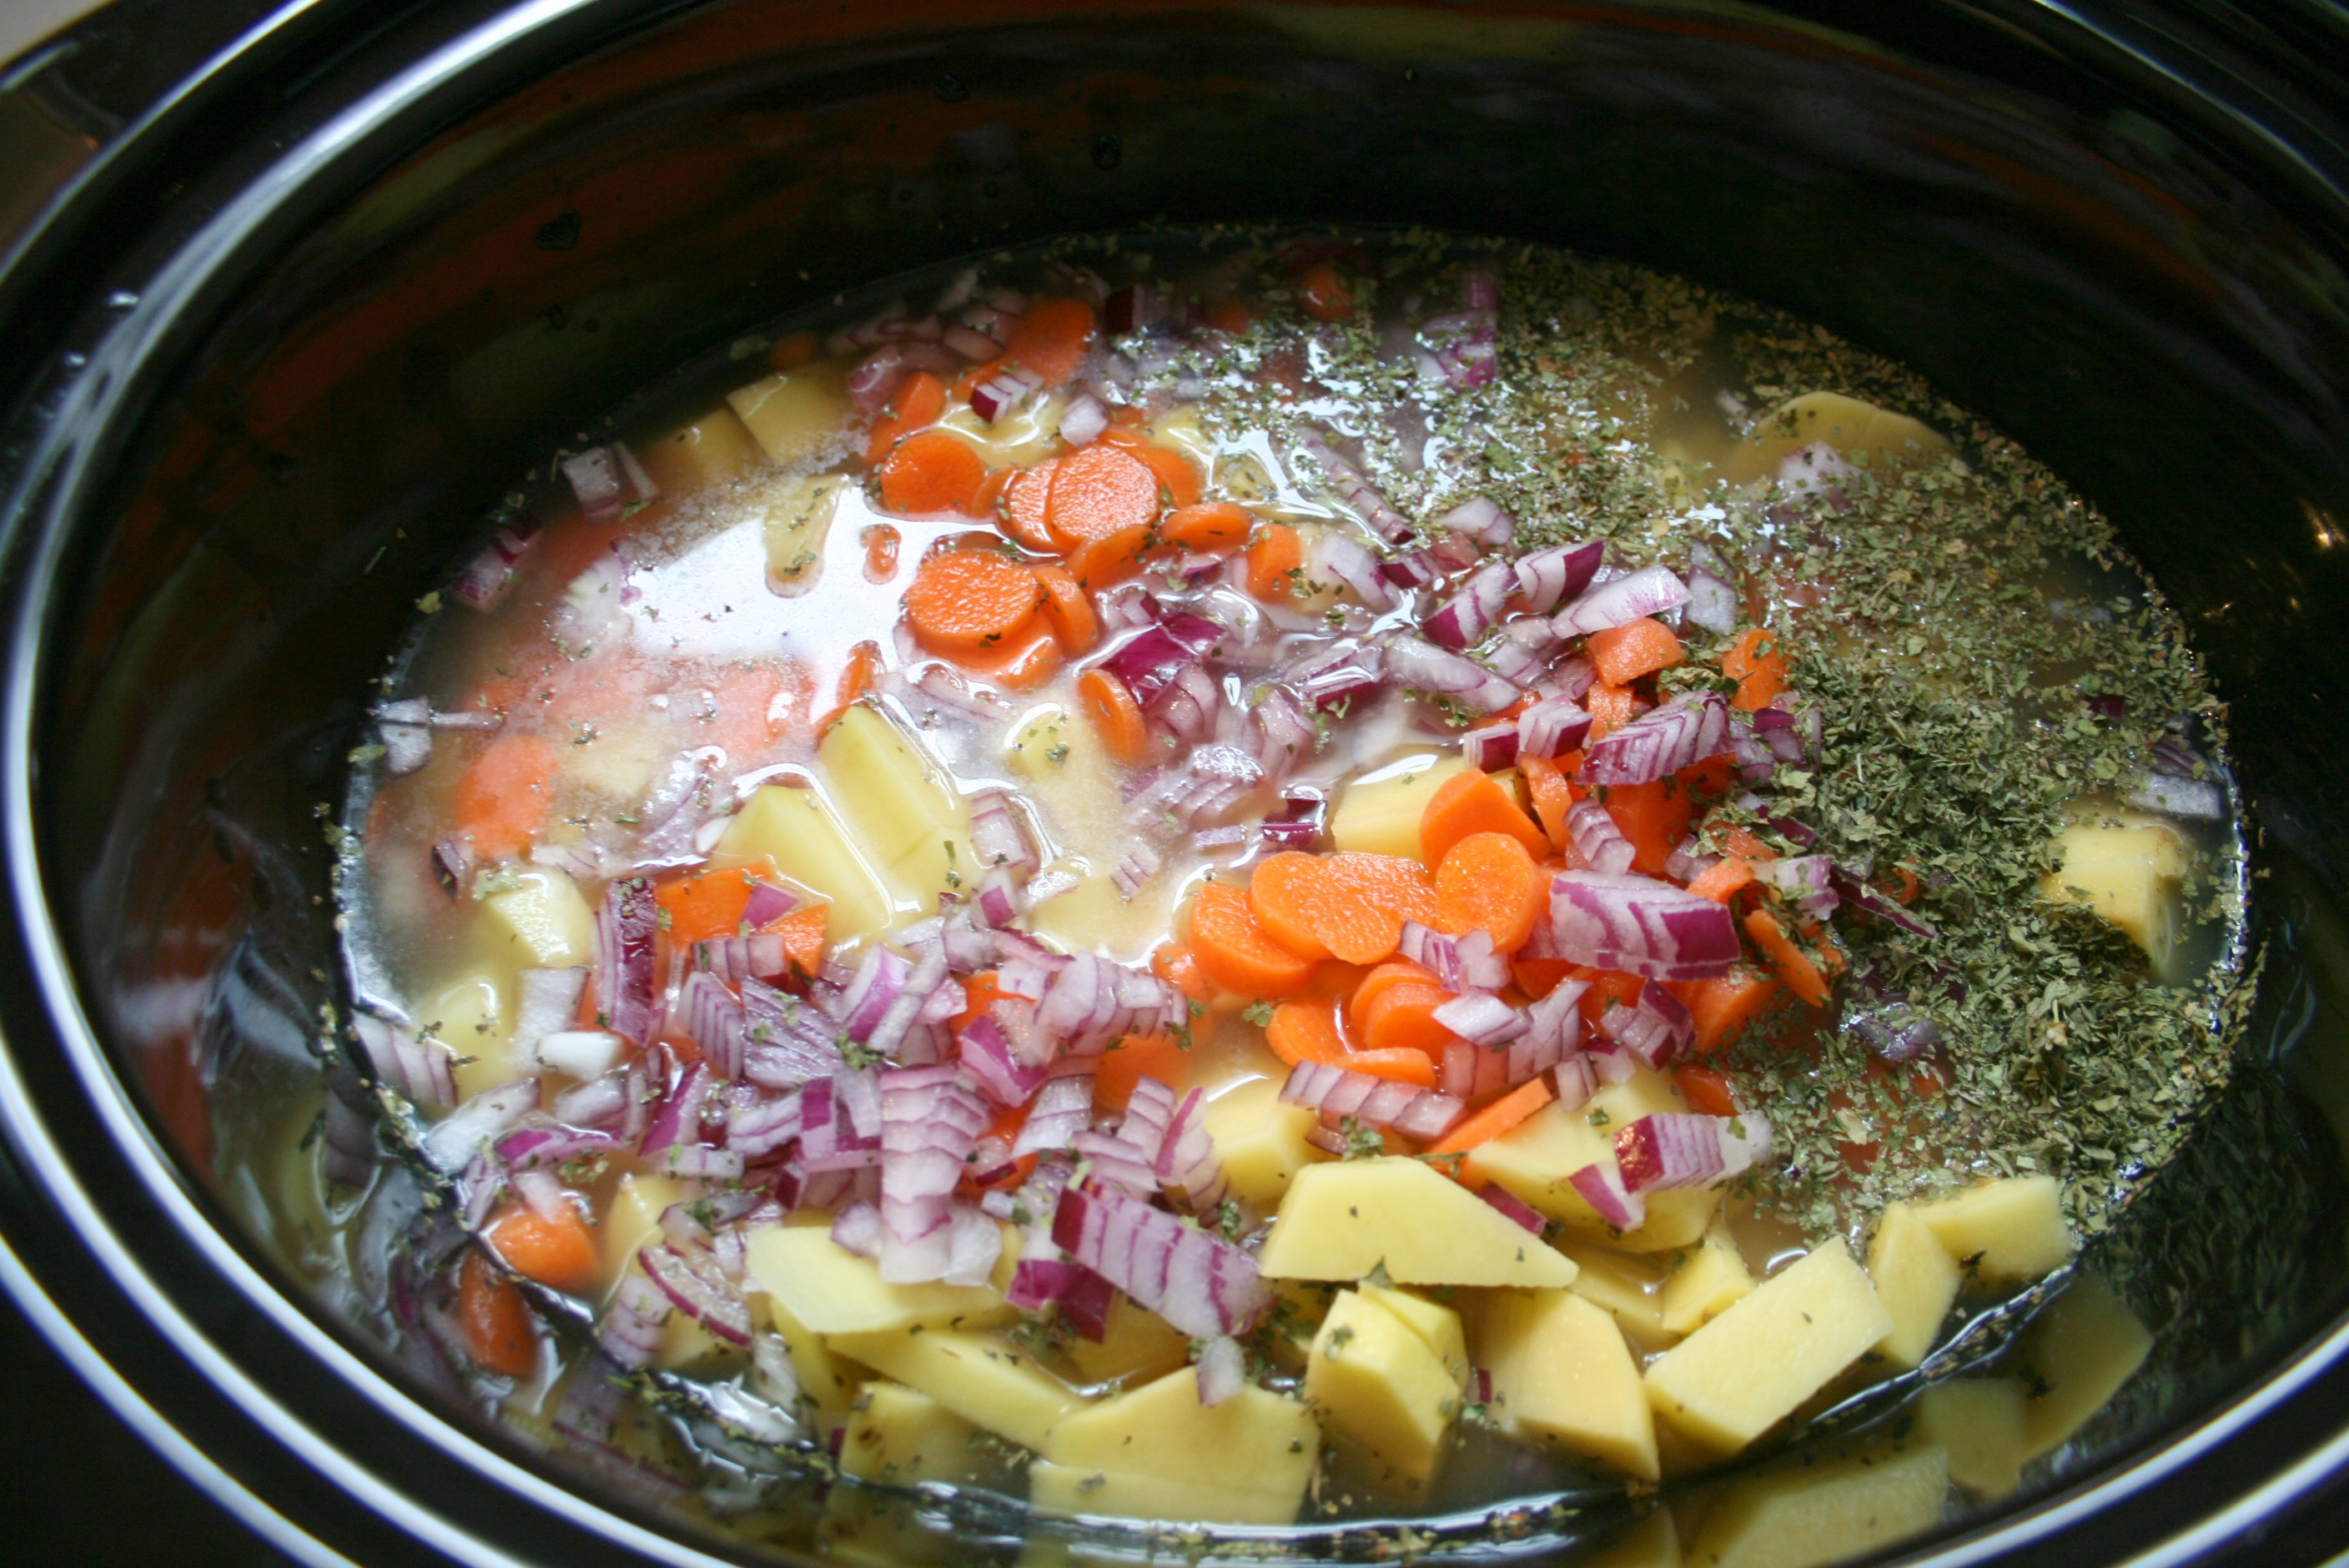 place vegetables in crockpot